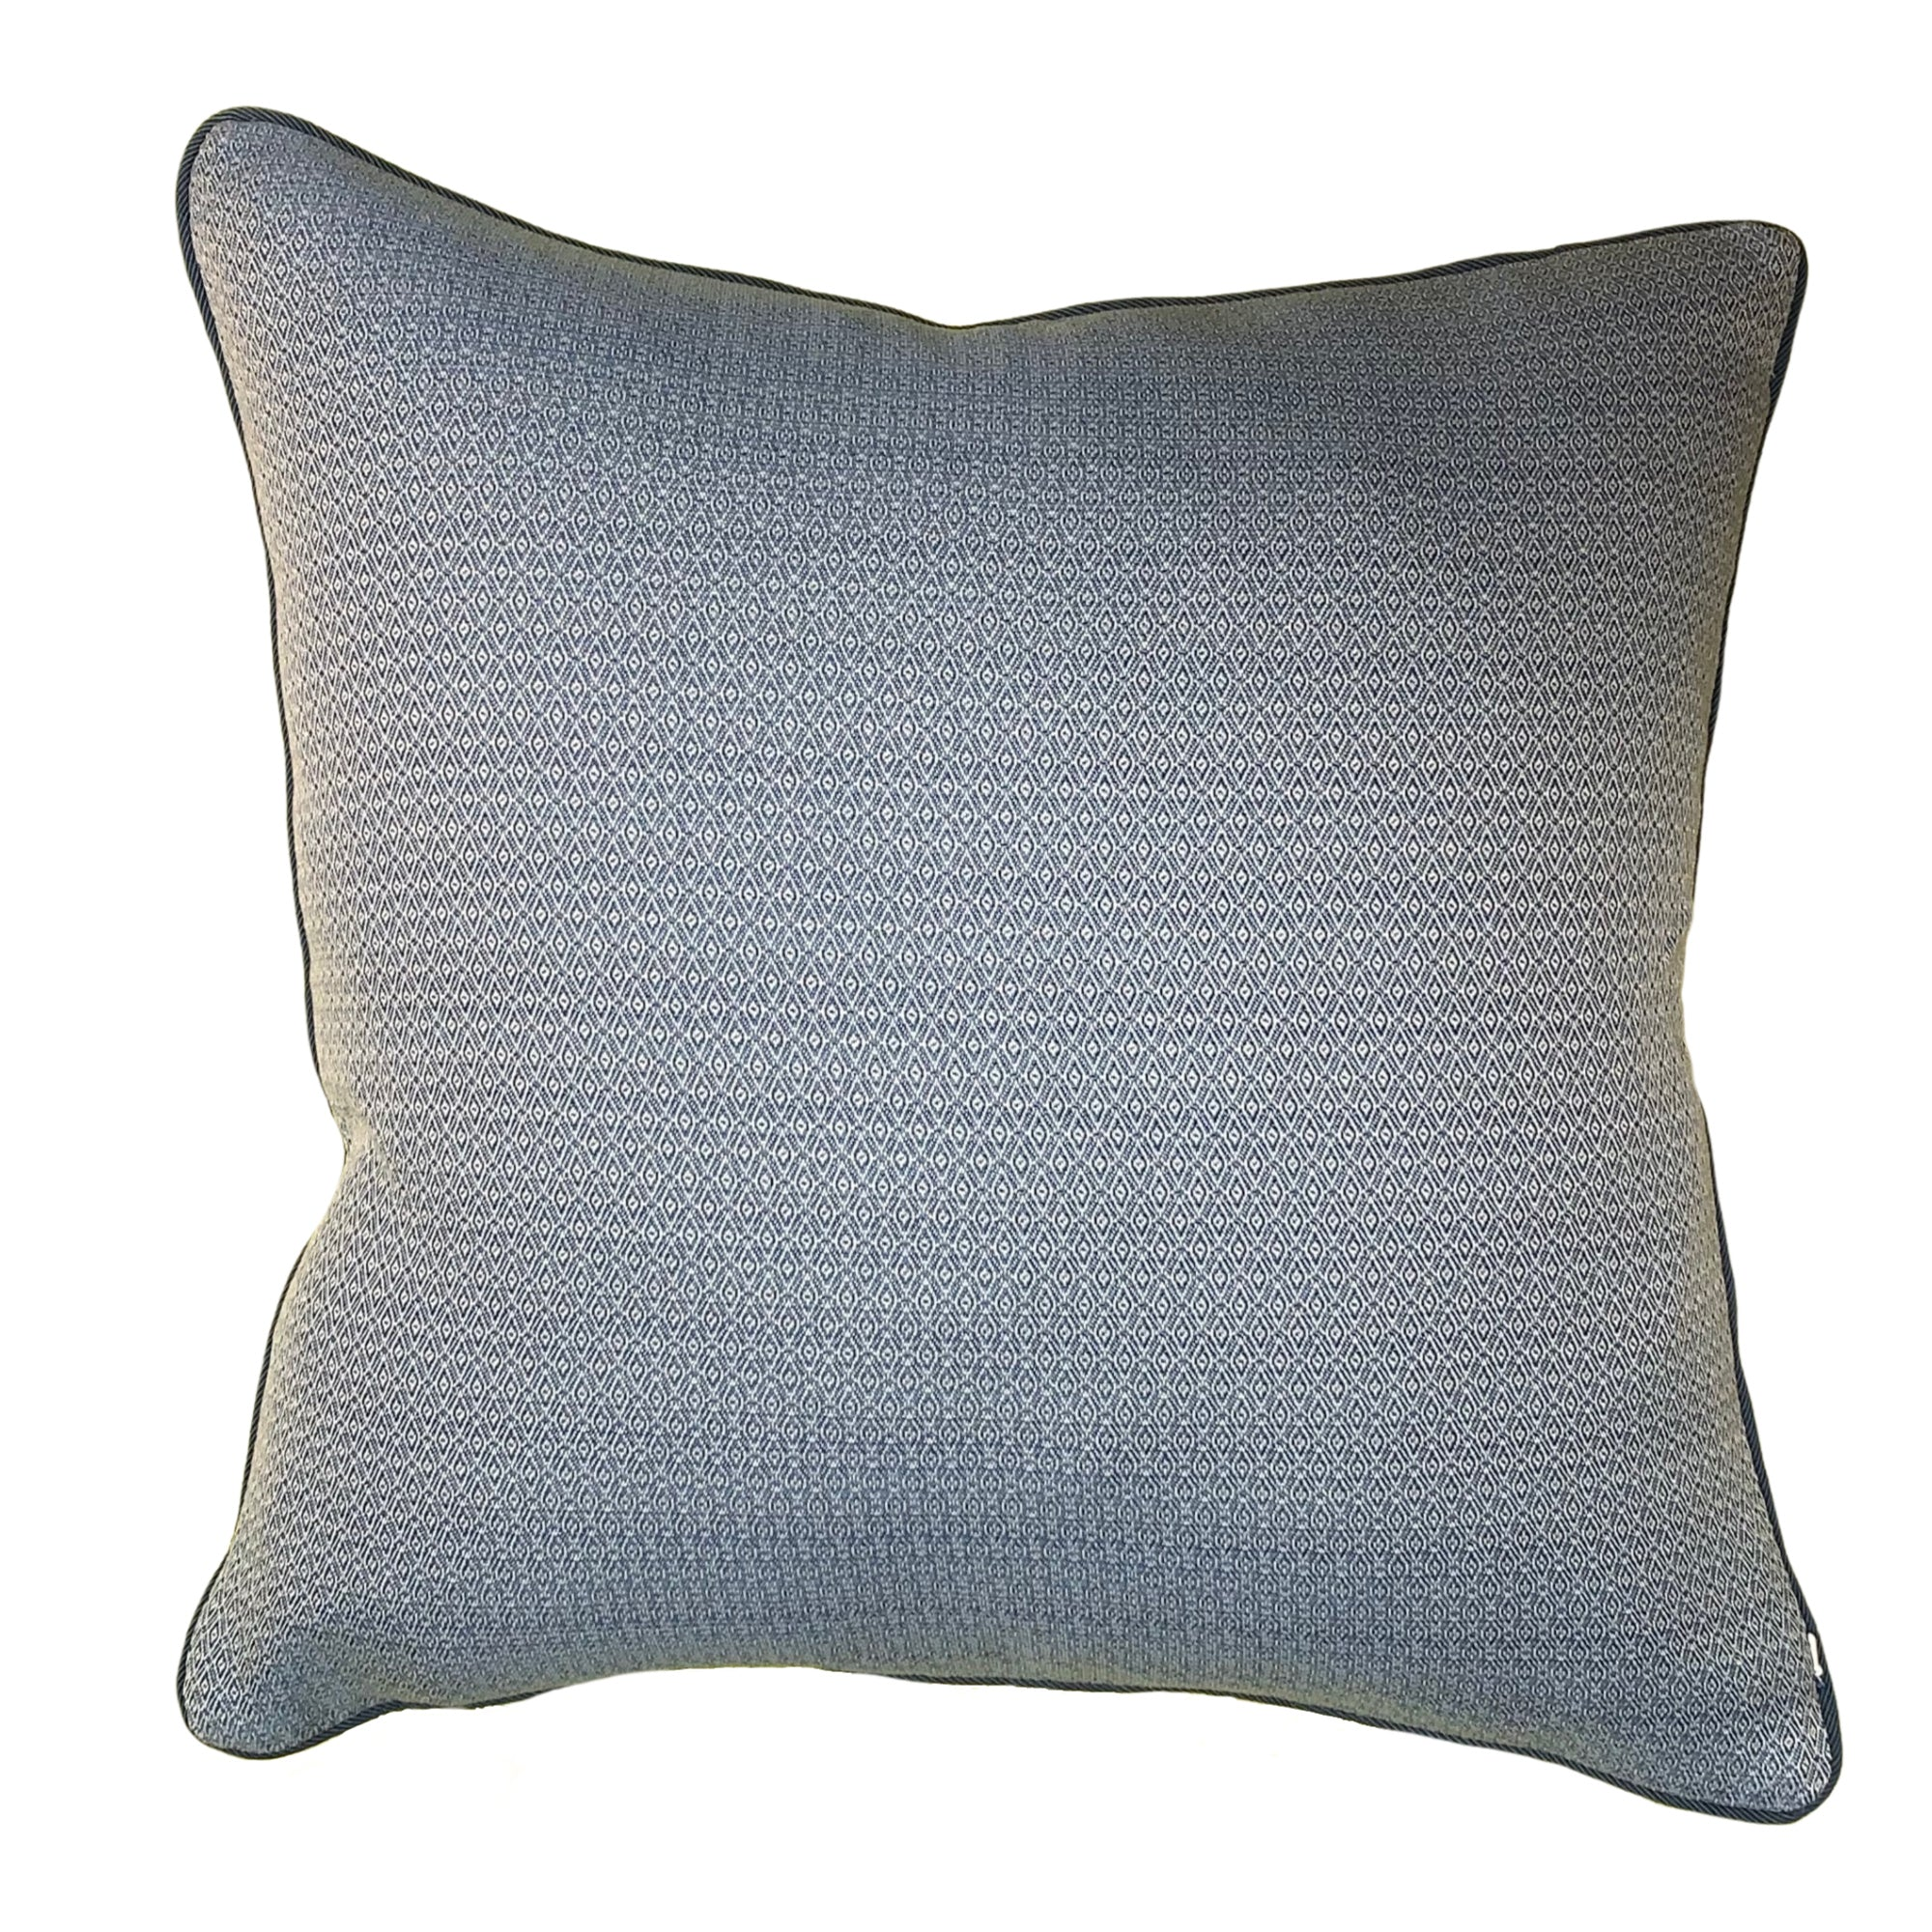 Scalamandre Woven Pillows